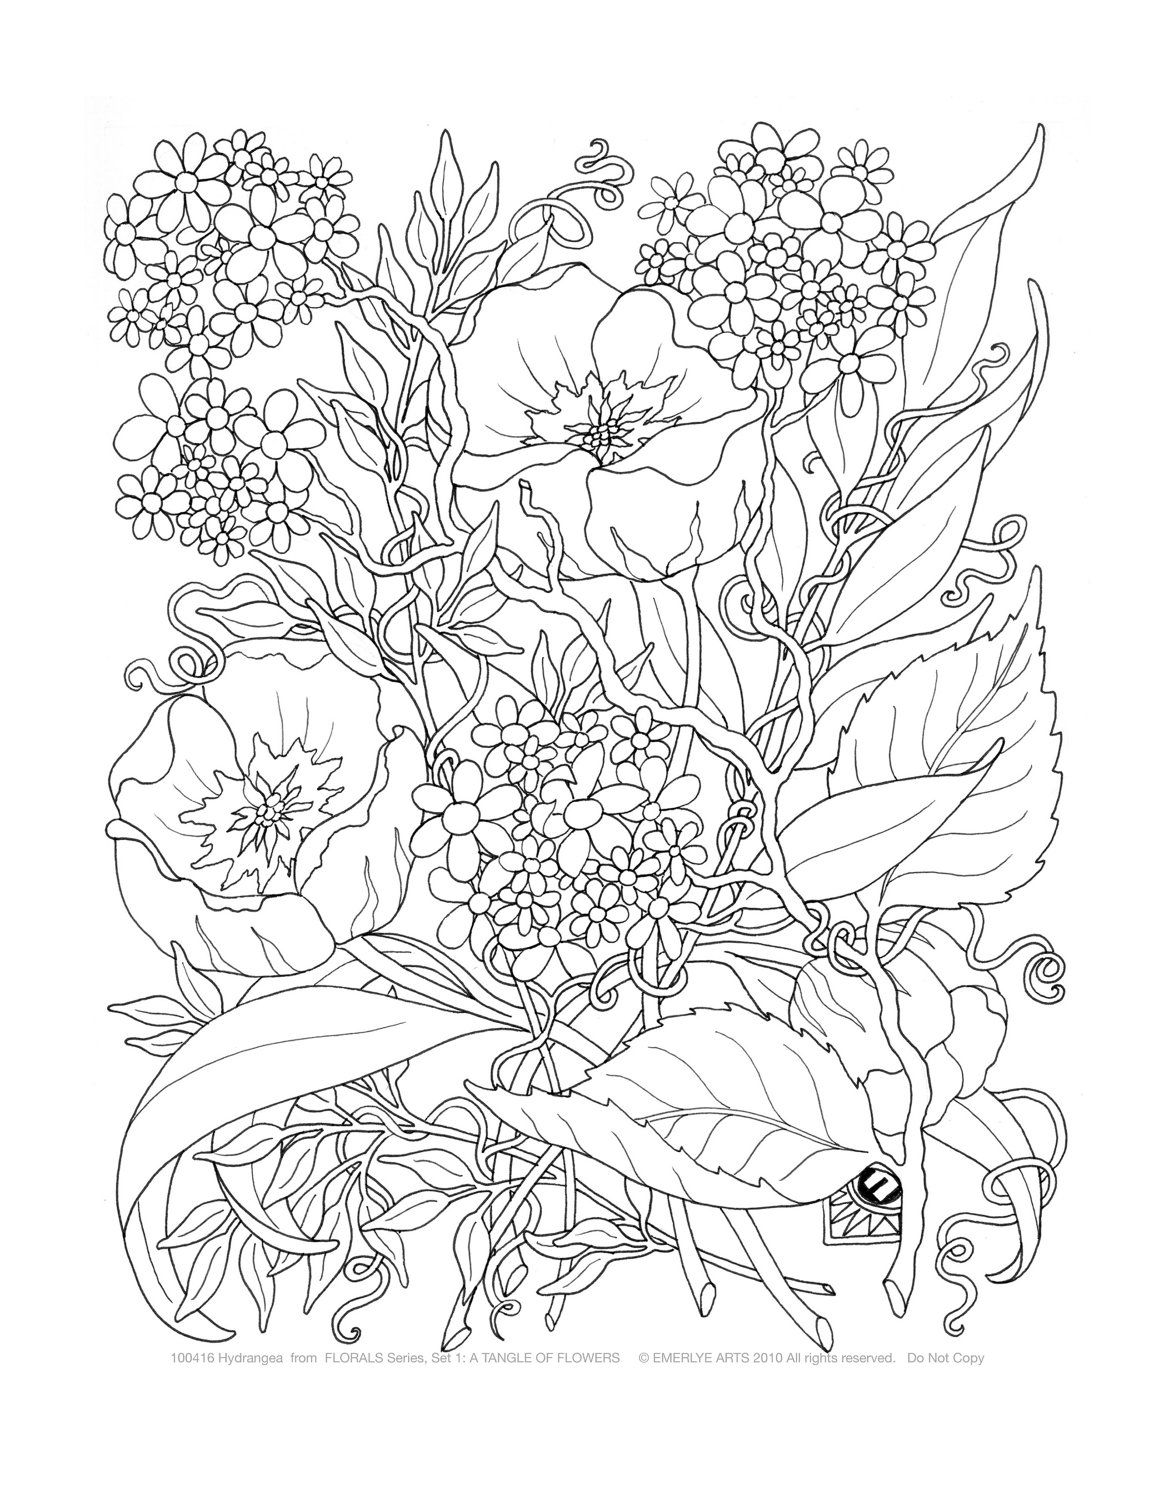 Free coloring pages adults printable - Coloring Pages For Adults Printable Coloring Pages Sheets For Kids Get The Latest Free Coloring Pages For Adults Images Favorite Coloring Pages To Print